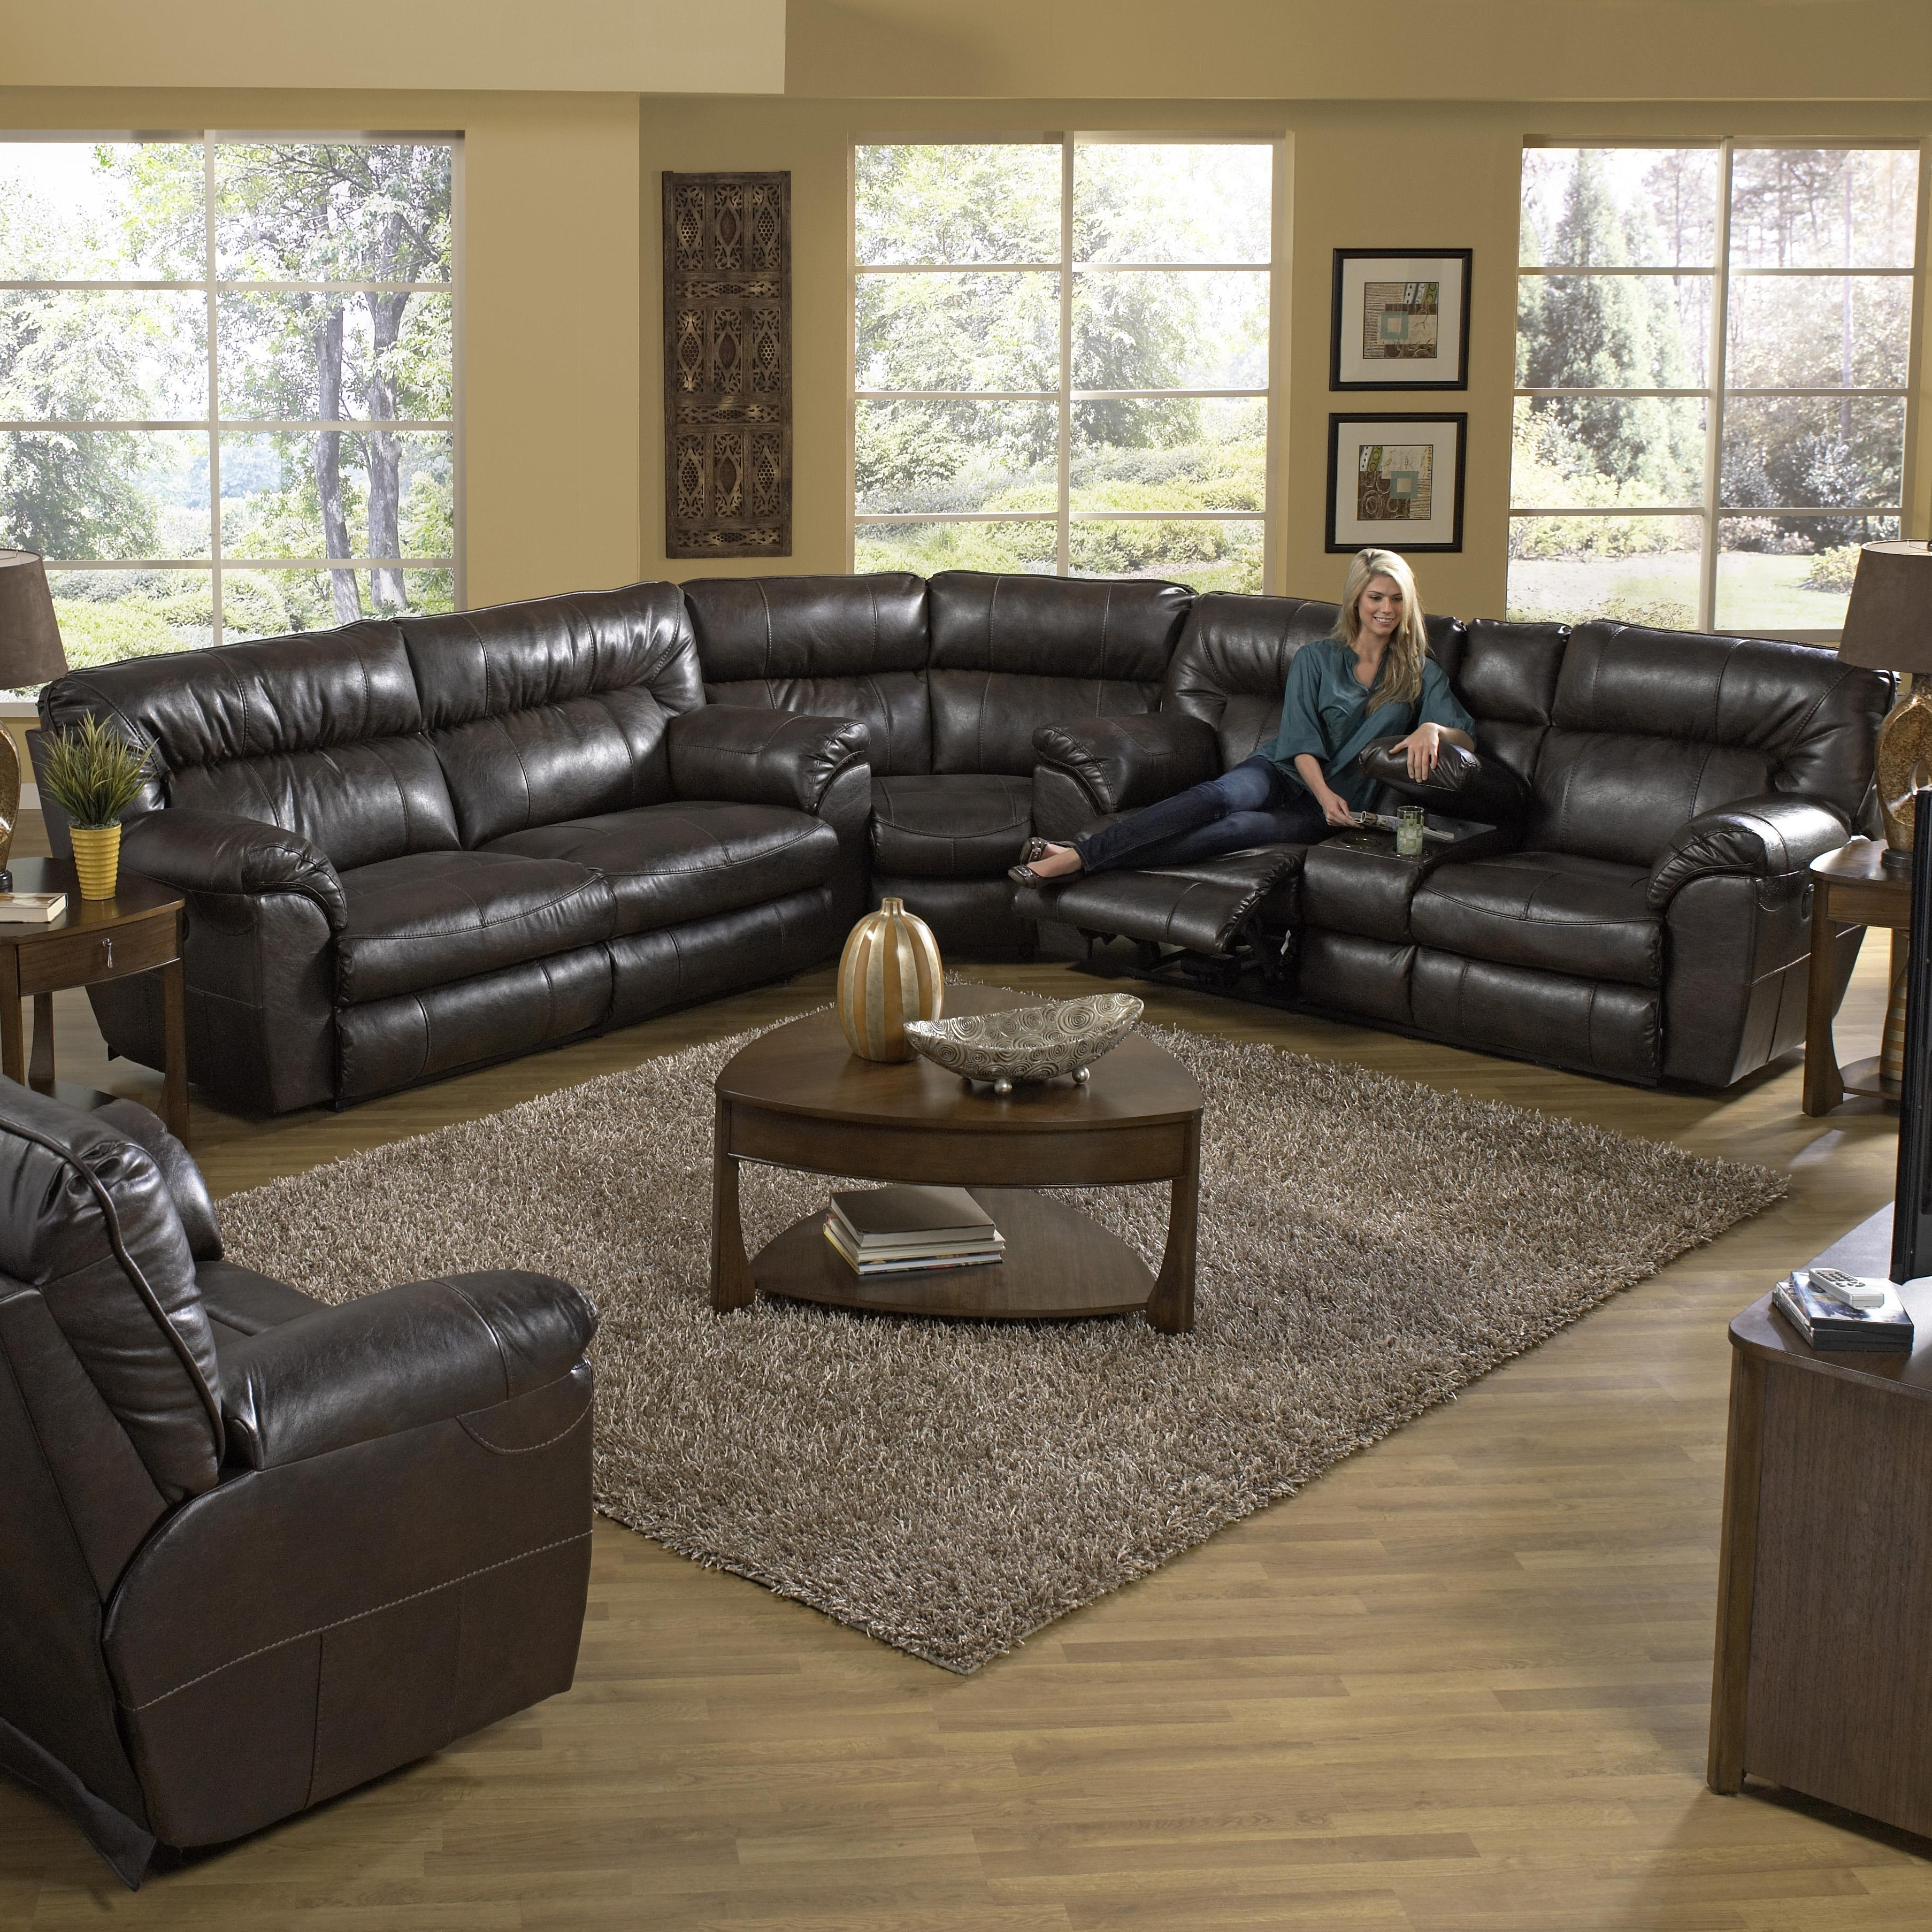 Sectional Sofas With Consoles Regarding Most Current Power Reclining Sectional Sofa With Left Consolecatnapper (View 12 of 20)